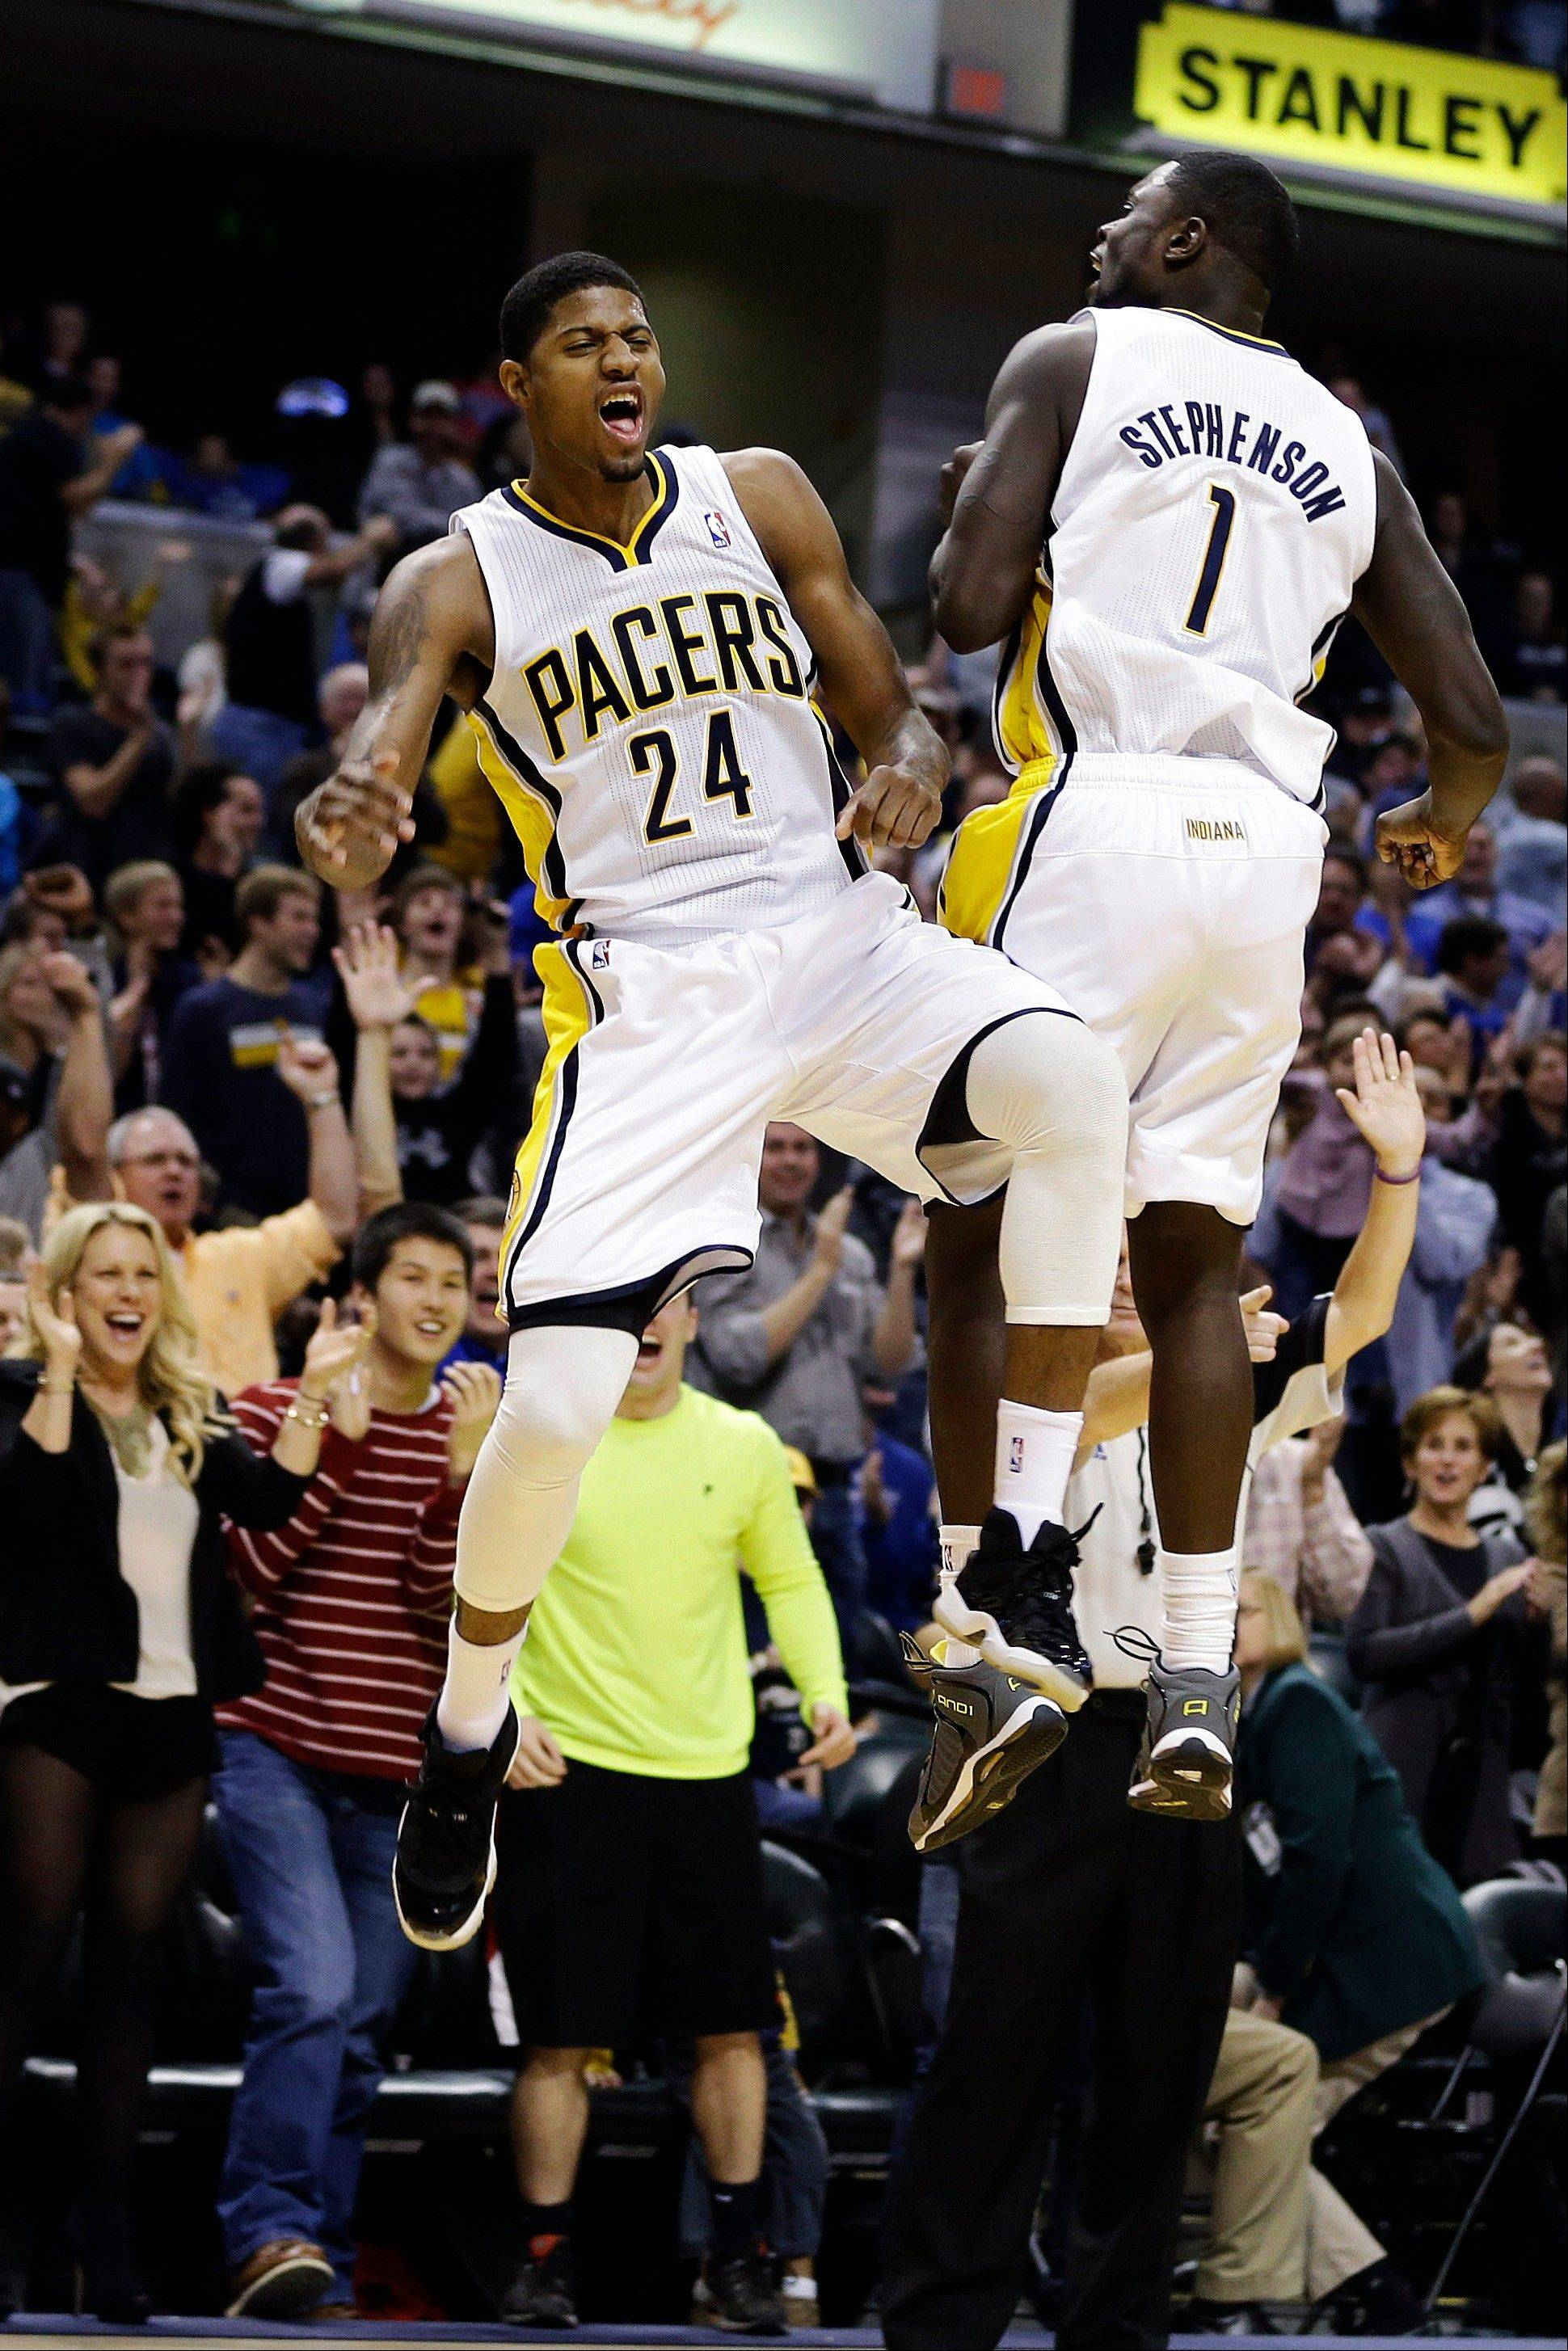 The Pacers� Paul George (24) and Lance Stephenson celebrate after George hit a 3-pointer during the second half Wednesday at home against New Orleans.